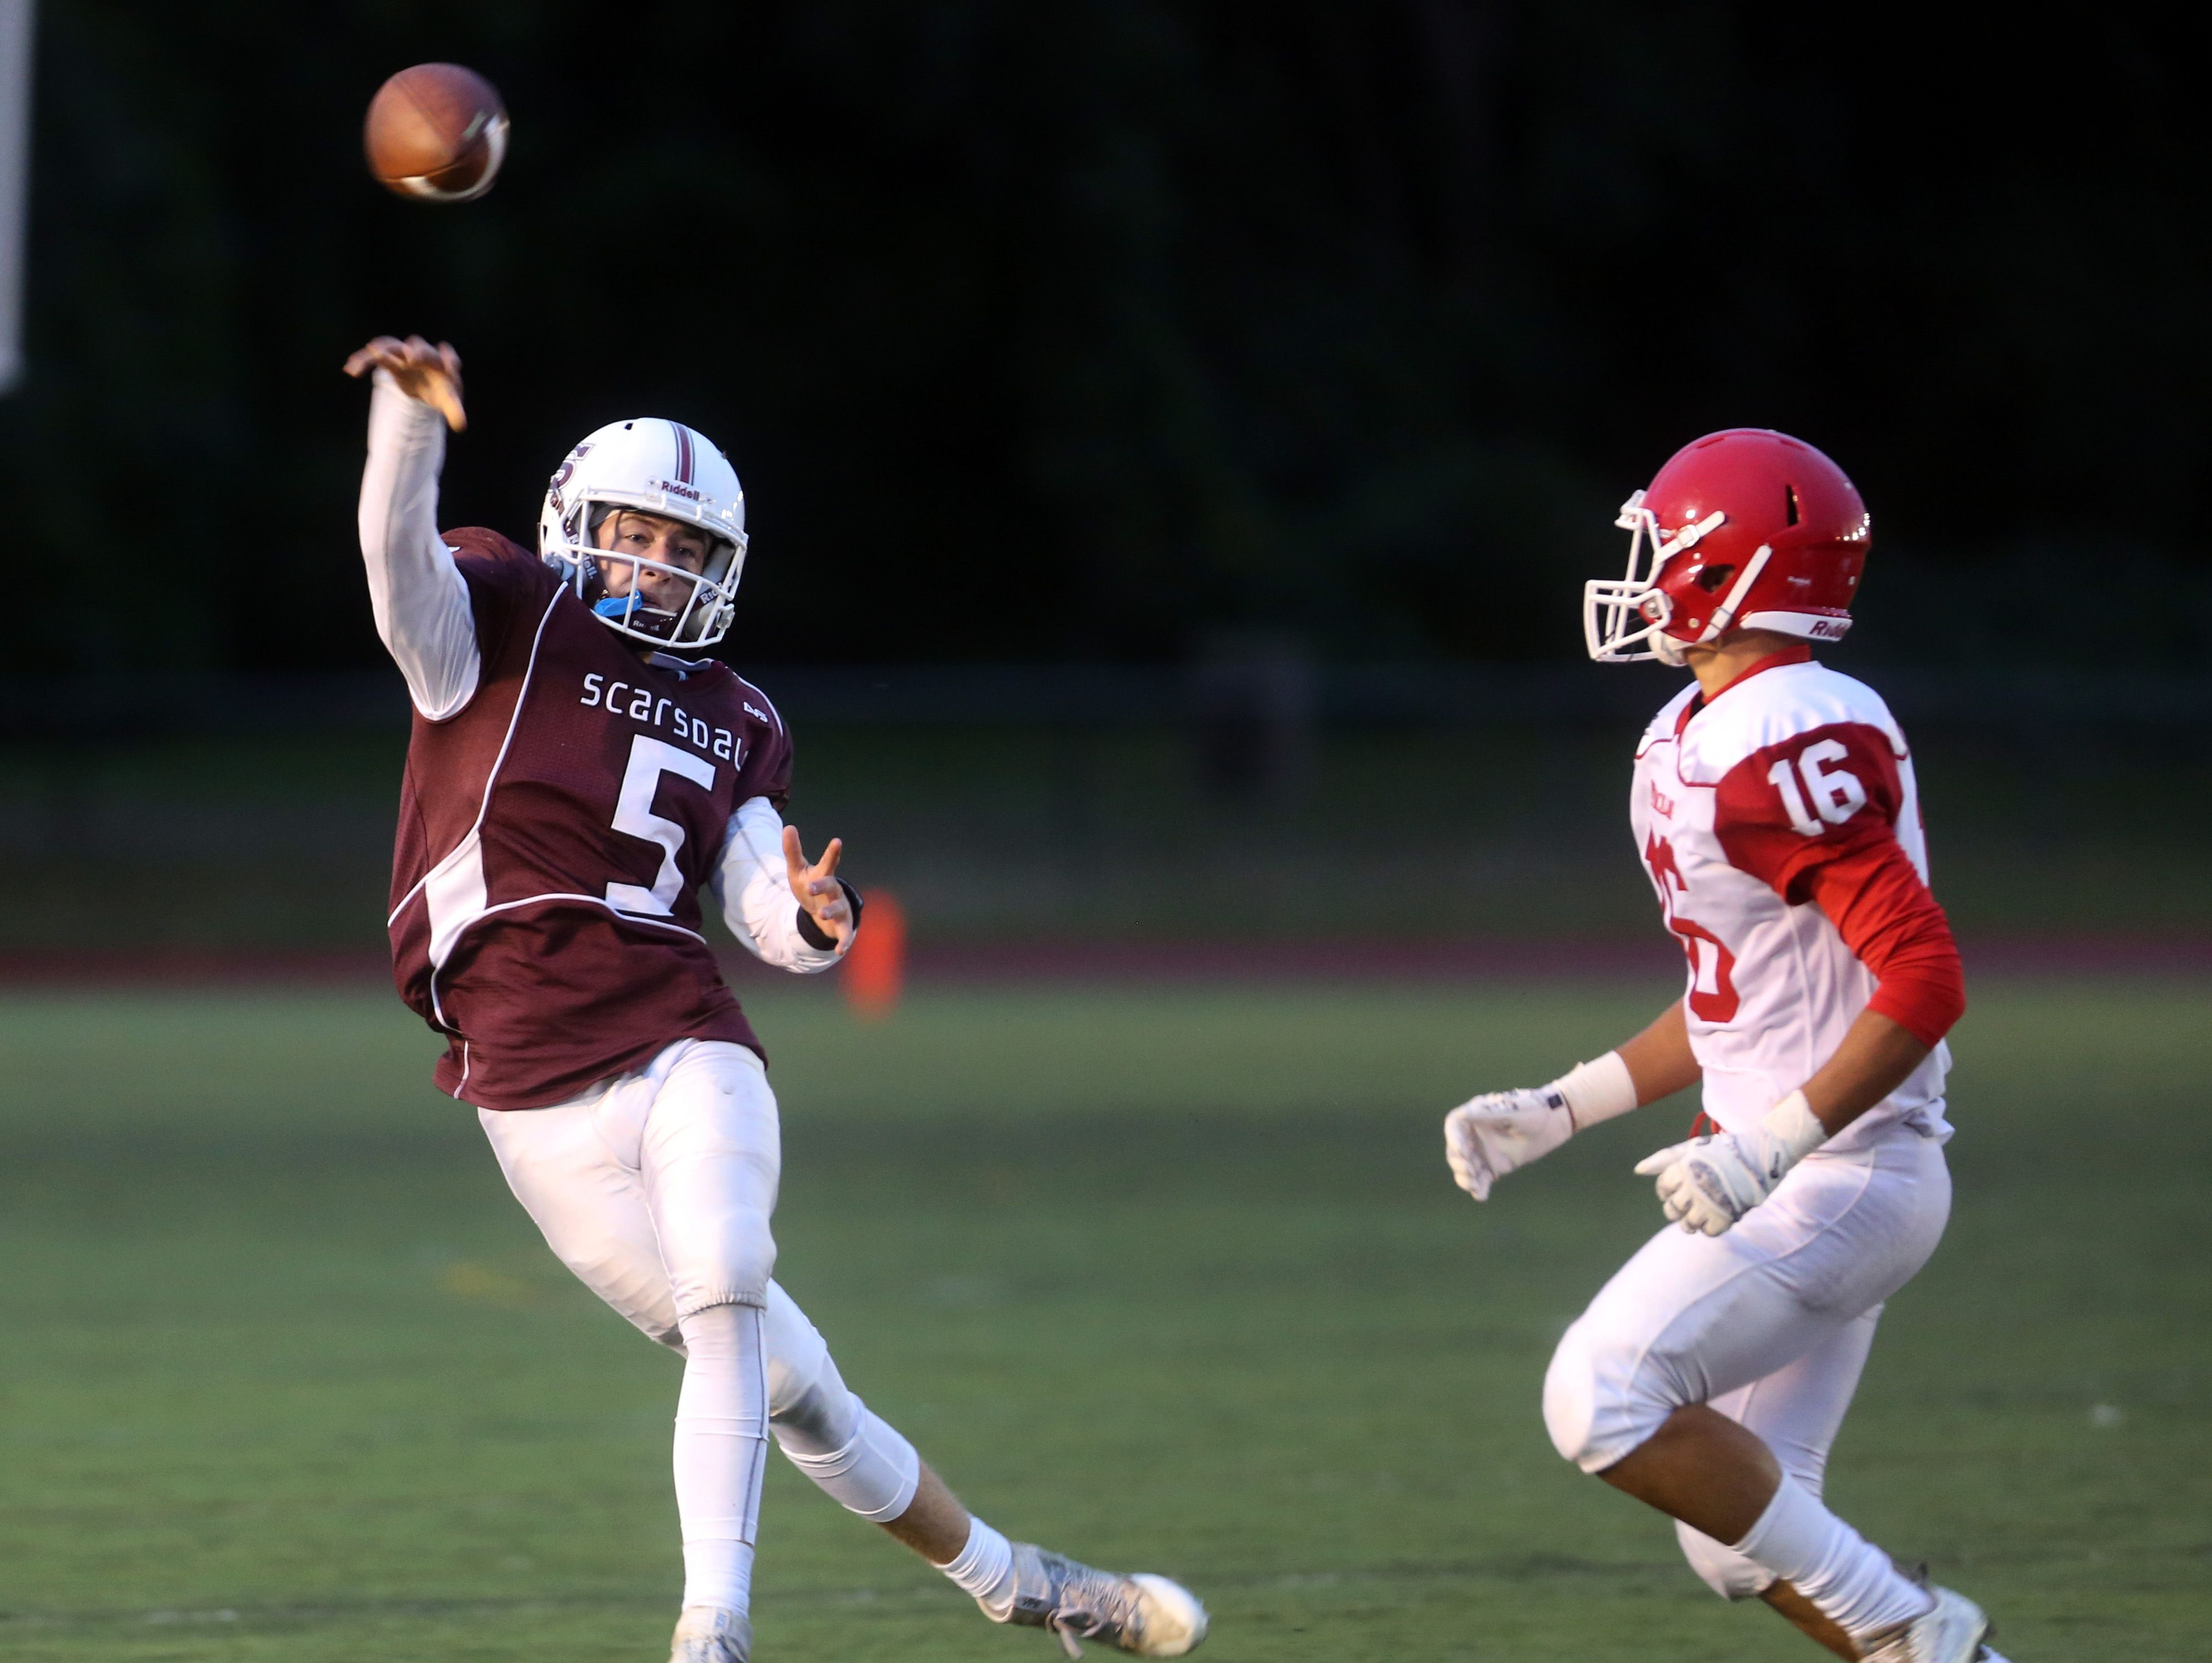 Scarsdale quarterback Robert Rolfe passes while being pursued by North Rockland's Nasier Vasquez during a varsity football game at Scarsdale High School Sept. 30, 3016. Scarsdale defeated North Rockland 31-7.